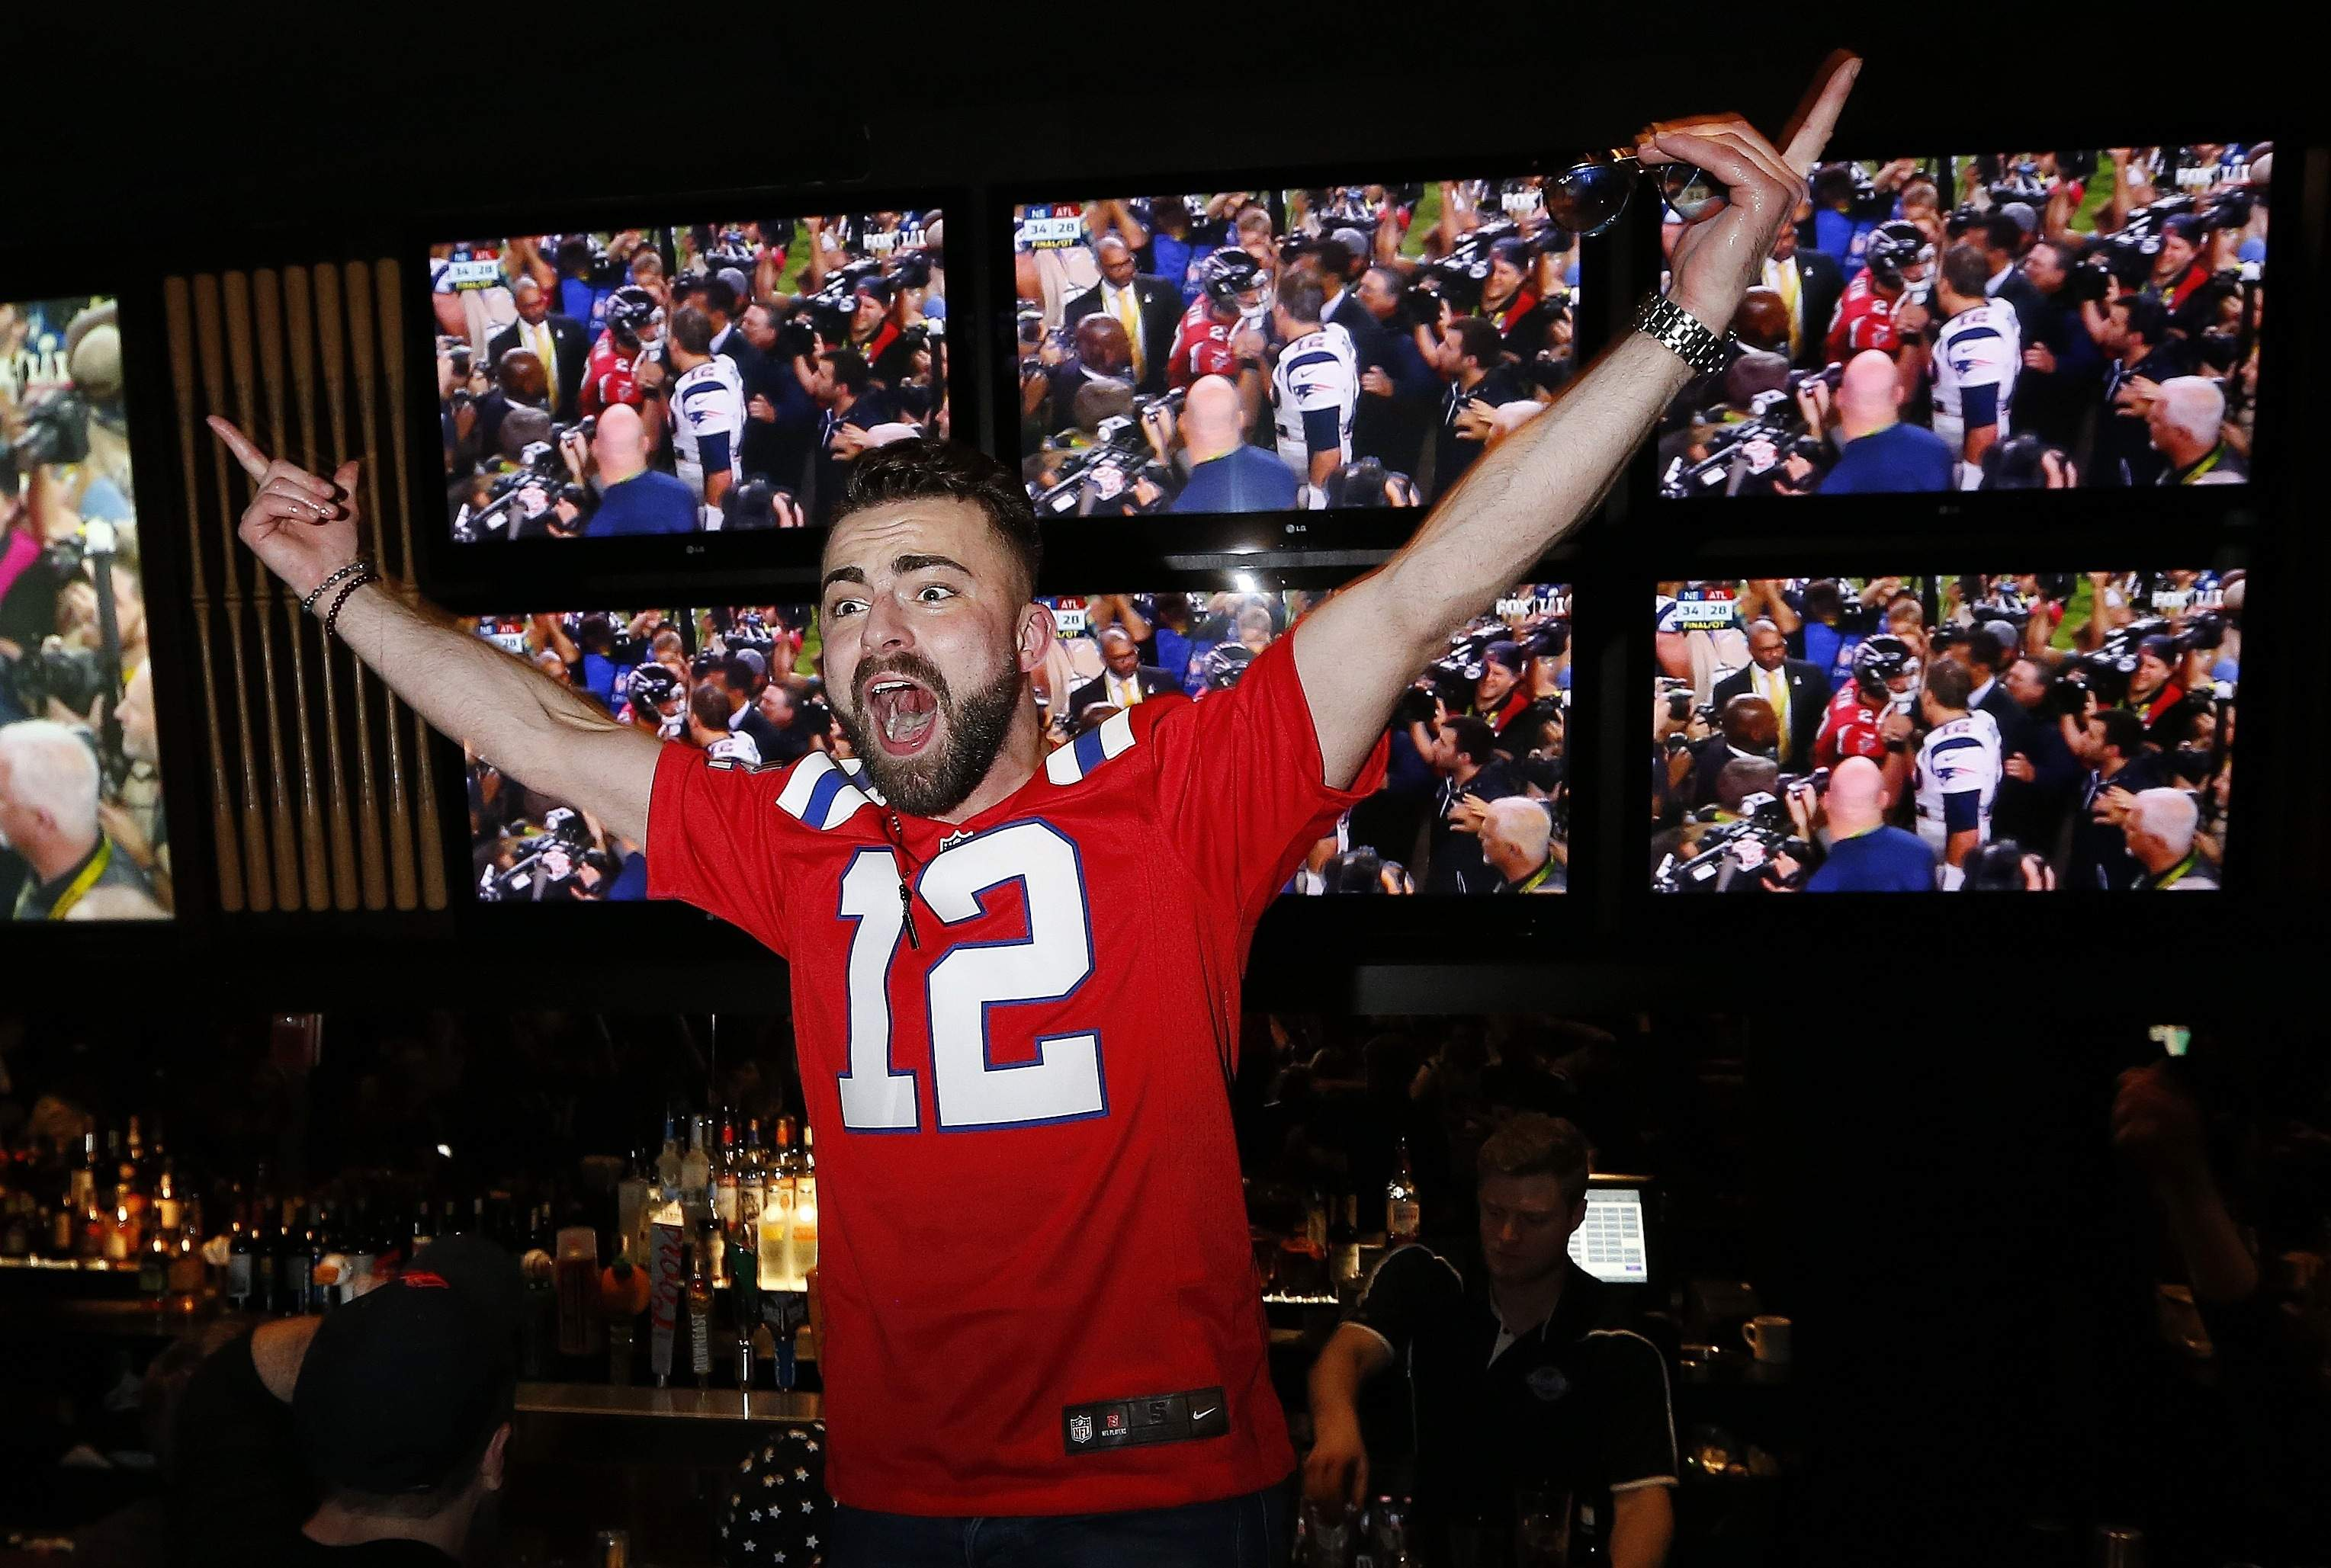 Brandon Washburn celebrates at a Boston bar after the New England Patriots defeated the Atlanta Falcons in Super Bowl 51 in Houston, Sunday, Feb. 5, 2017. The Patriots won 34-28. THE ASSOCIATED PRESS